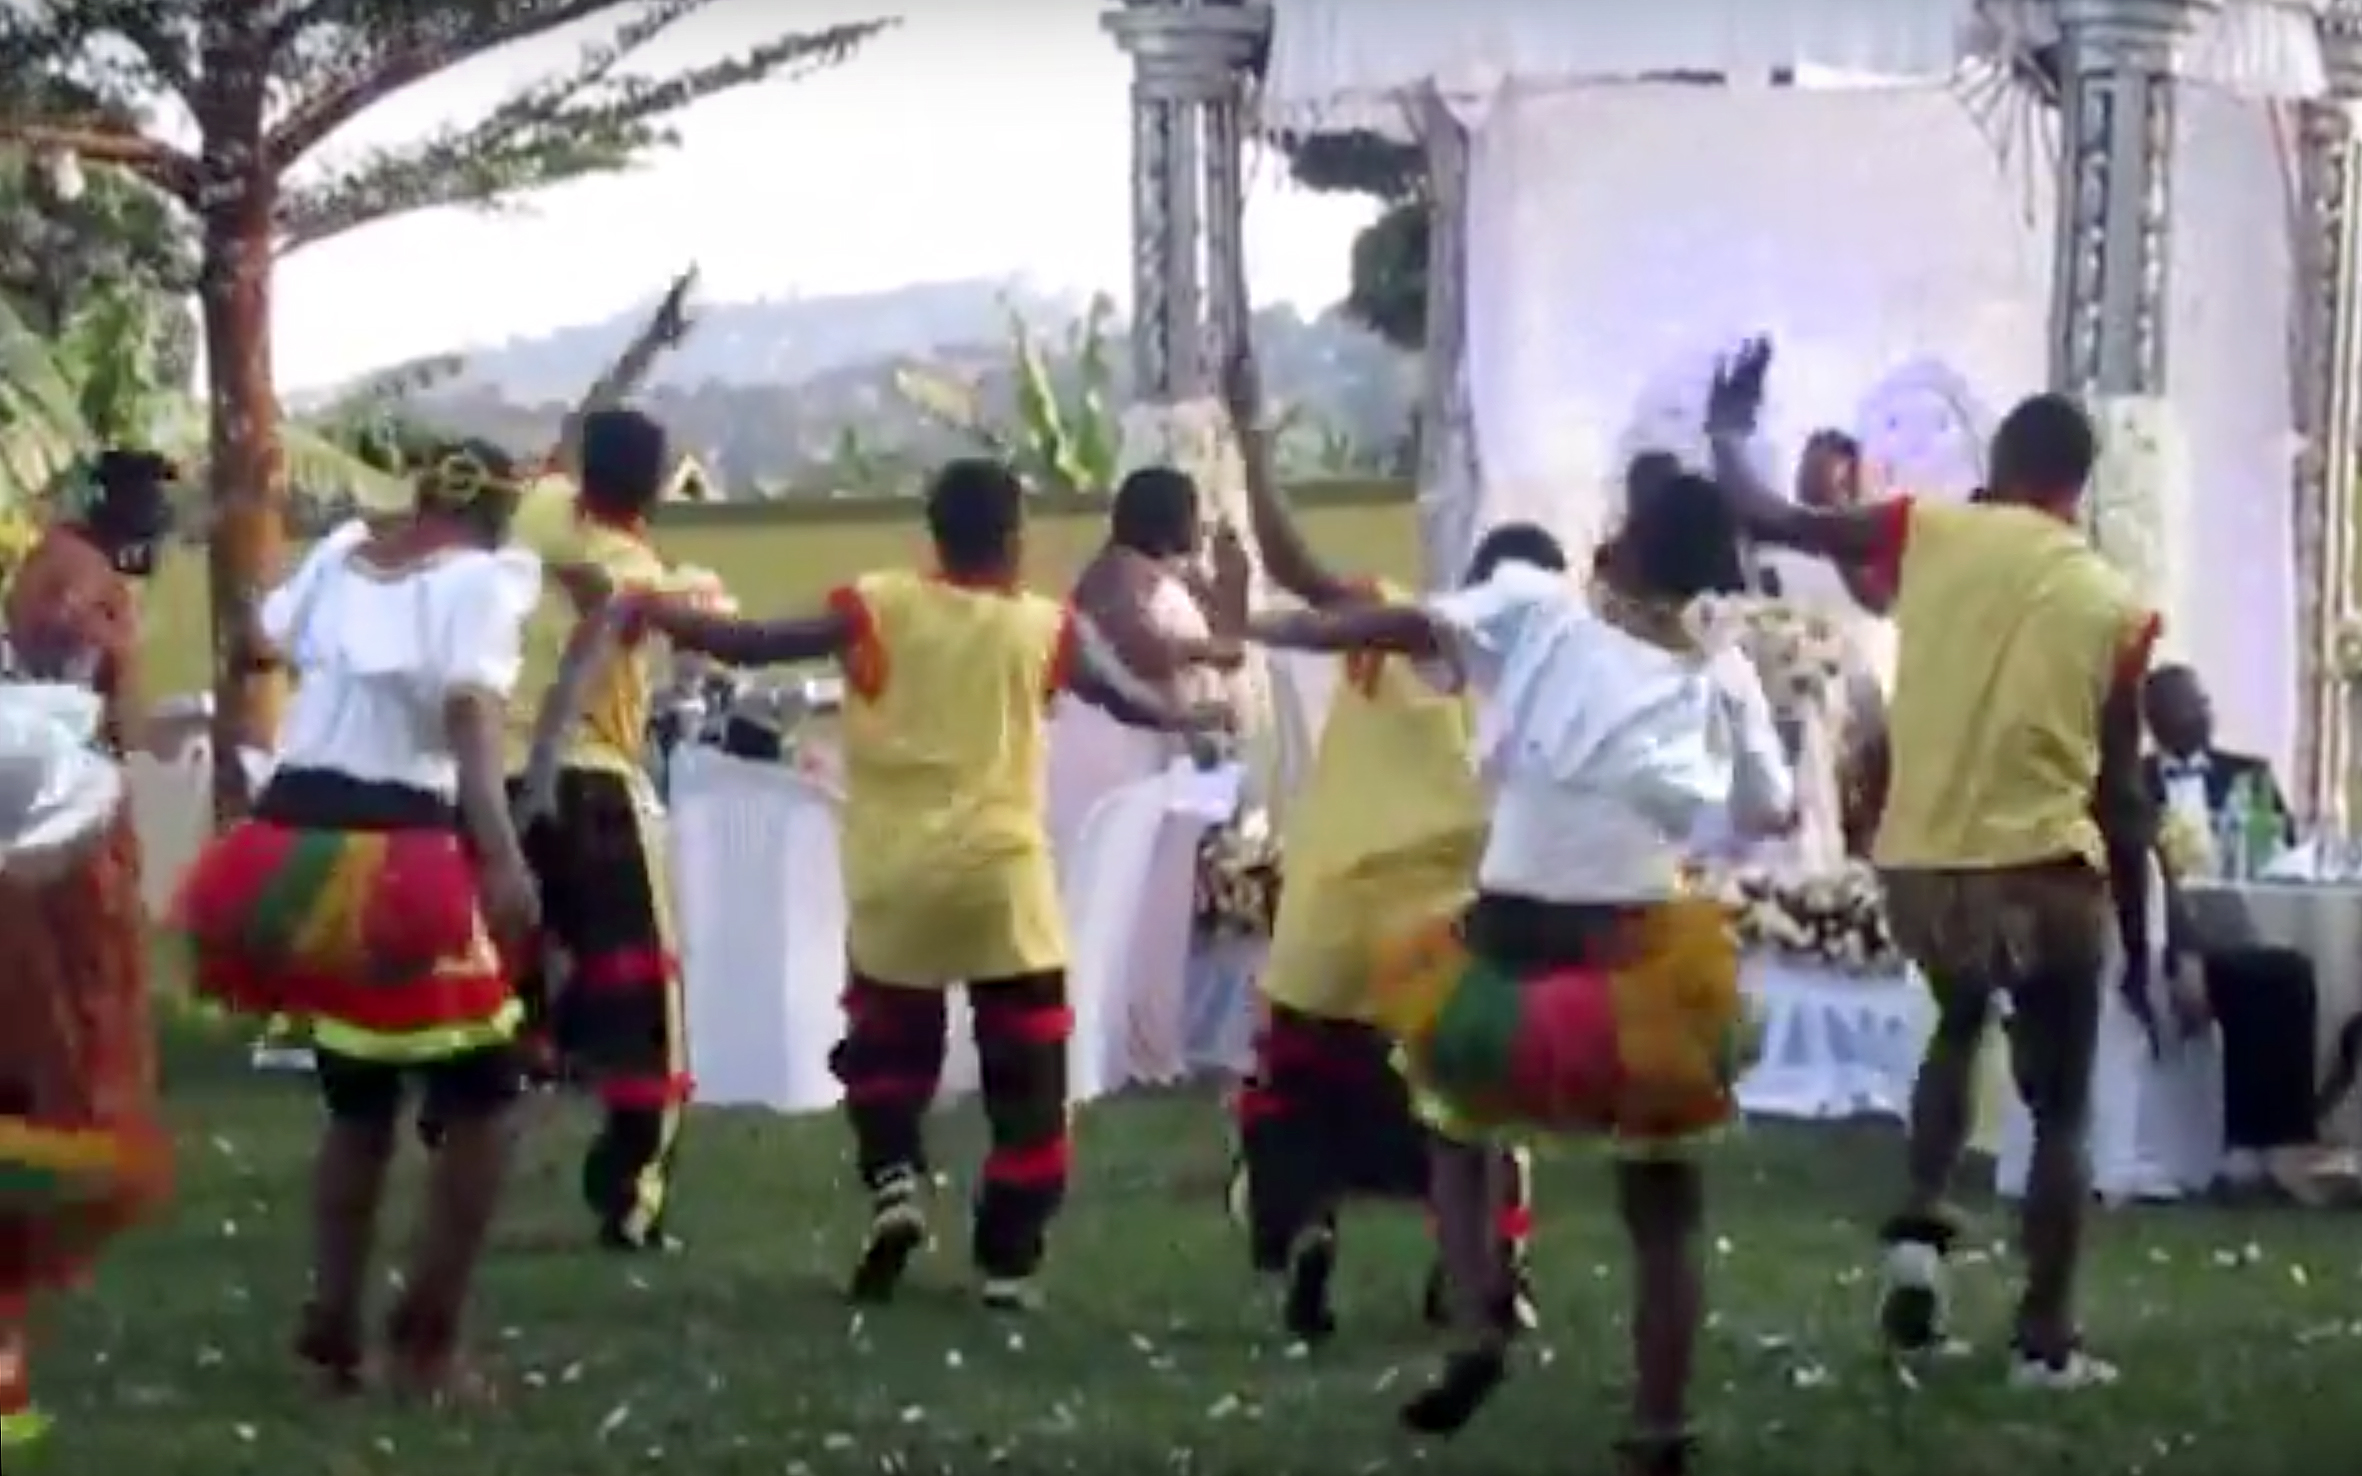 412.Iteso / Uganda - Iteso is a name for traditional dances by Iteso people who live in eastern Uganda in the districts of Soroti and Kumi.